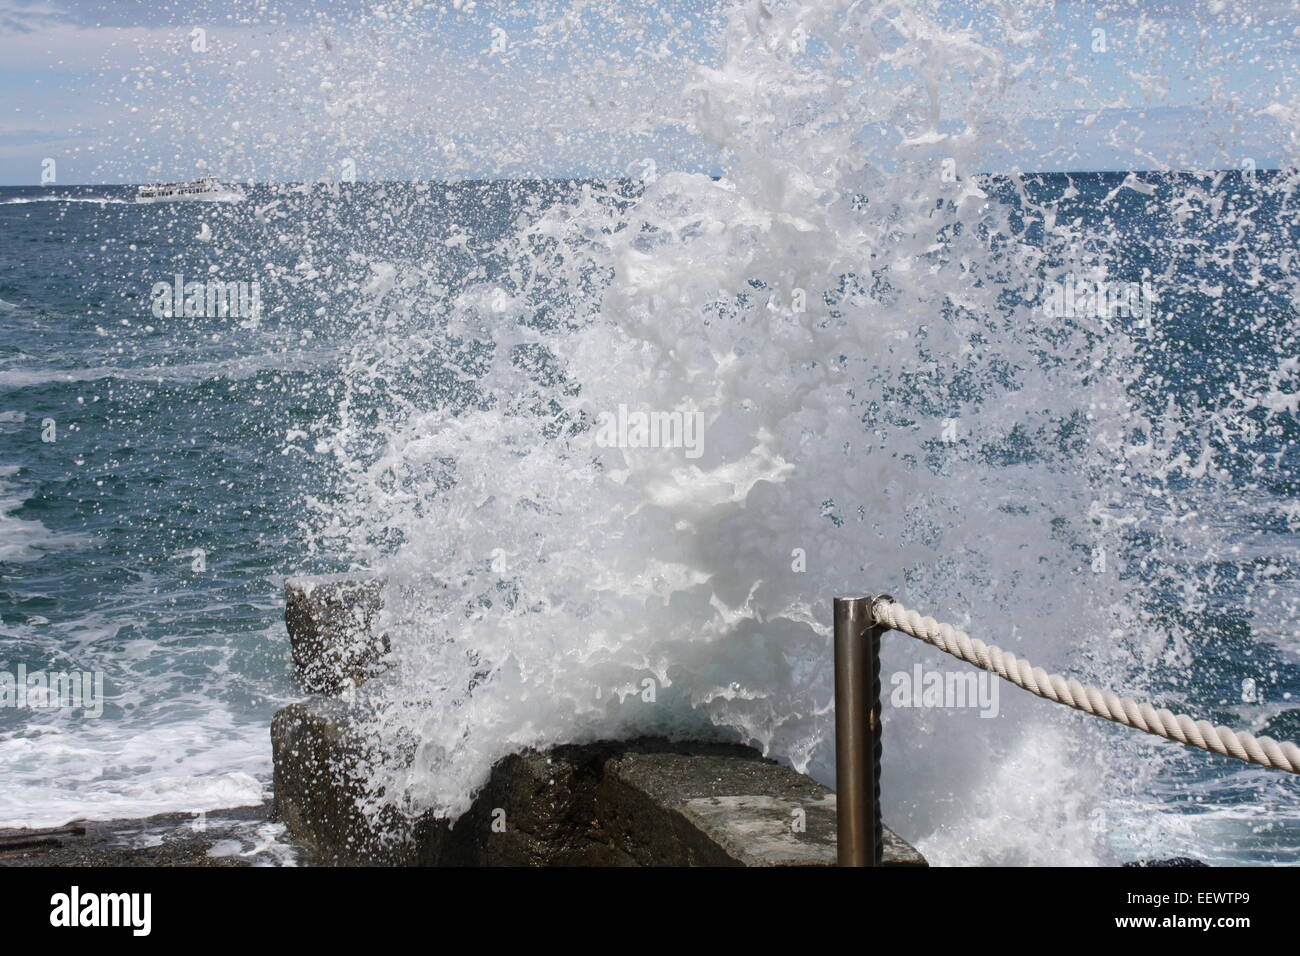 Terrazzamenti Stock Photos & Terrazzamenti Stock Images - Alamy